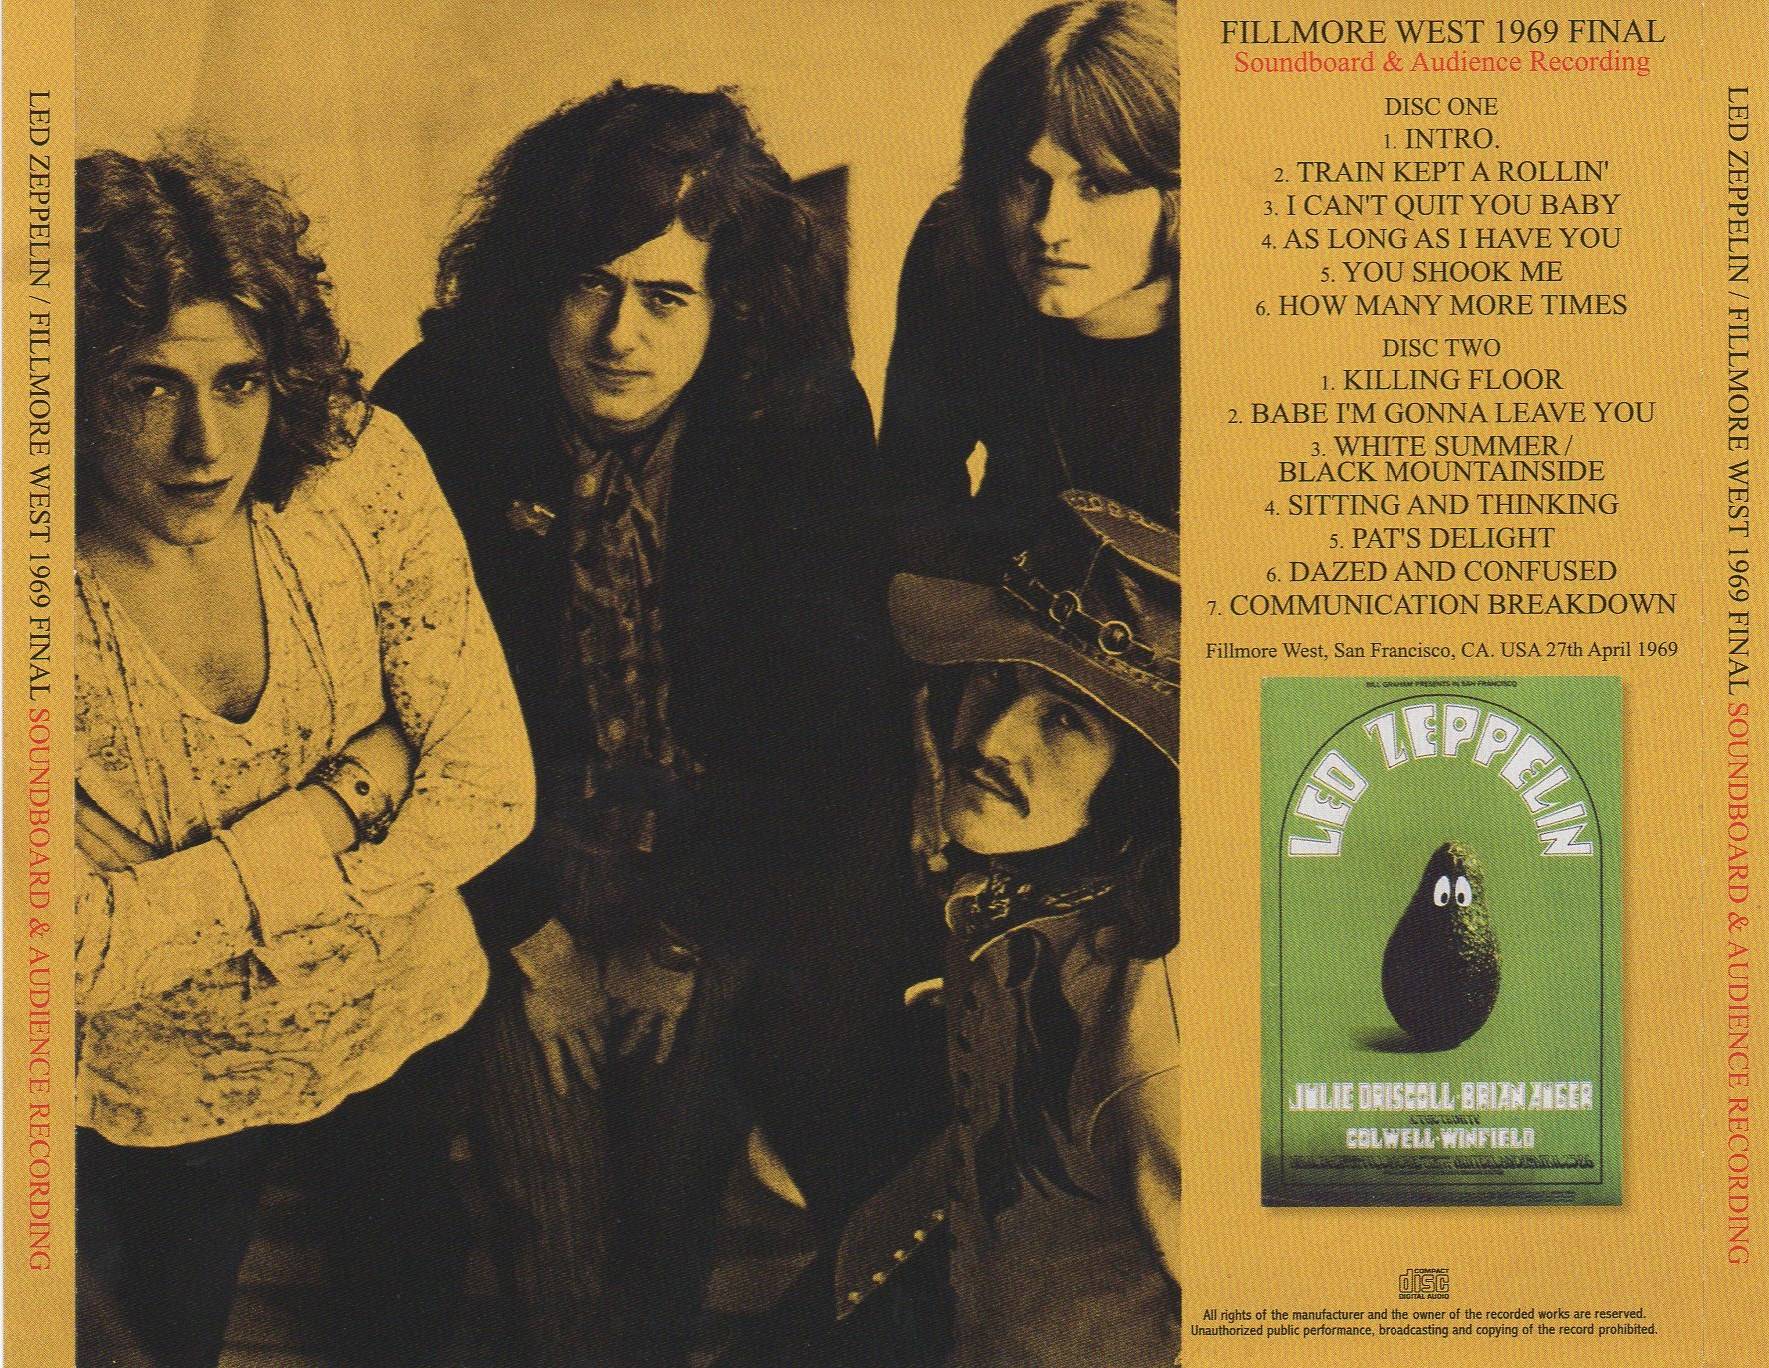 Les Bootlegs - Page 13 31250819690427SanFranciscoCAnonlabelrear